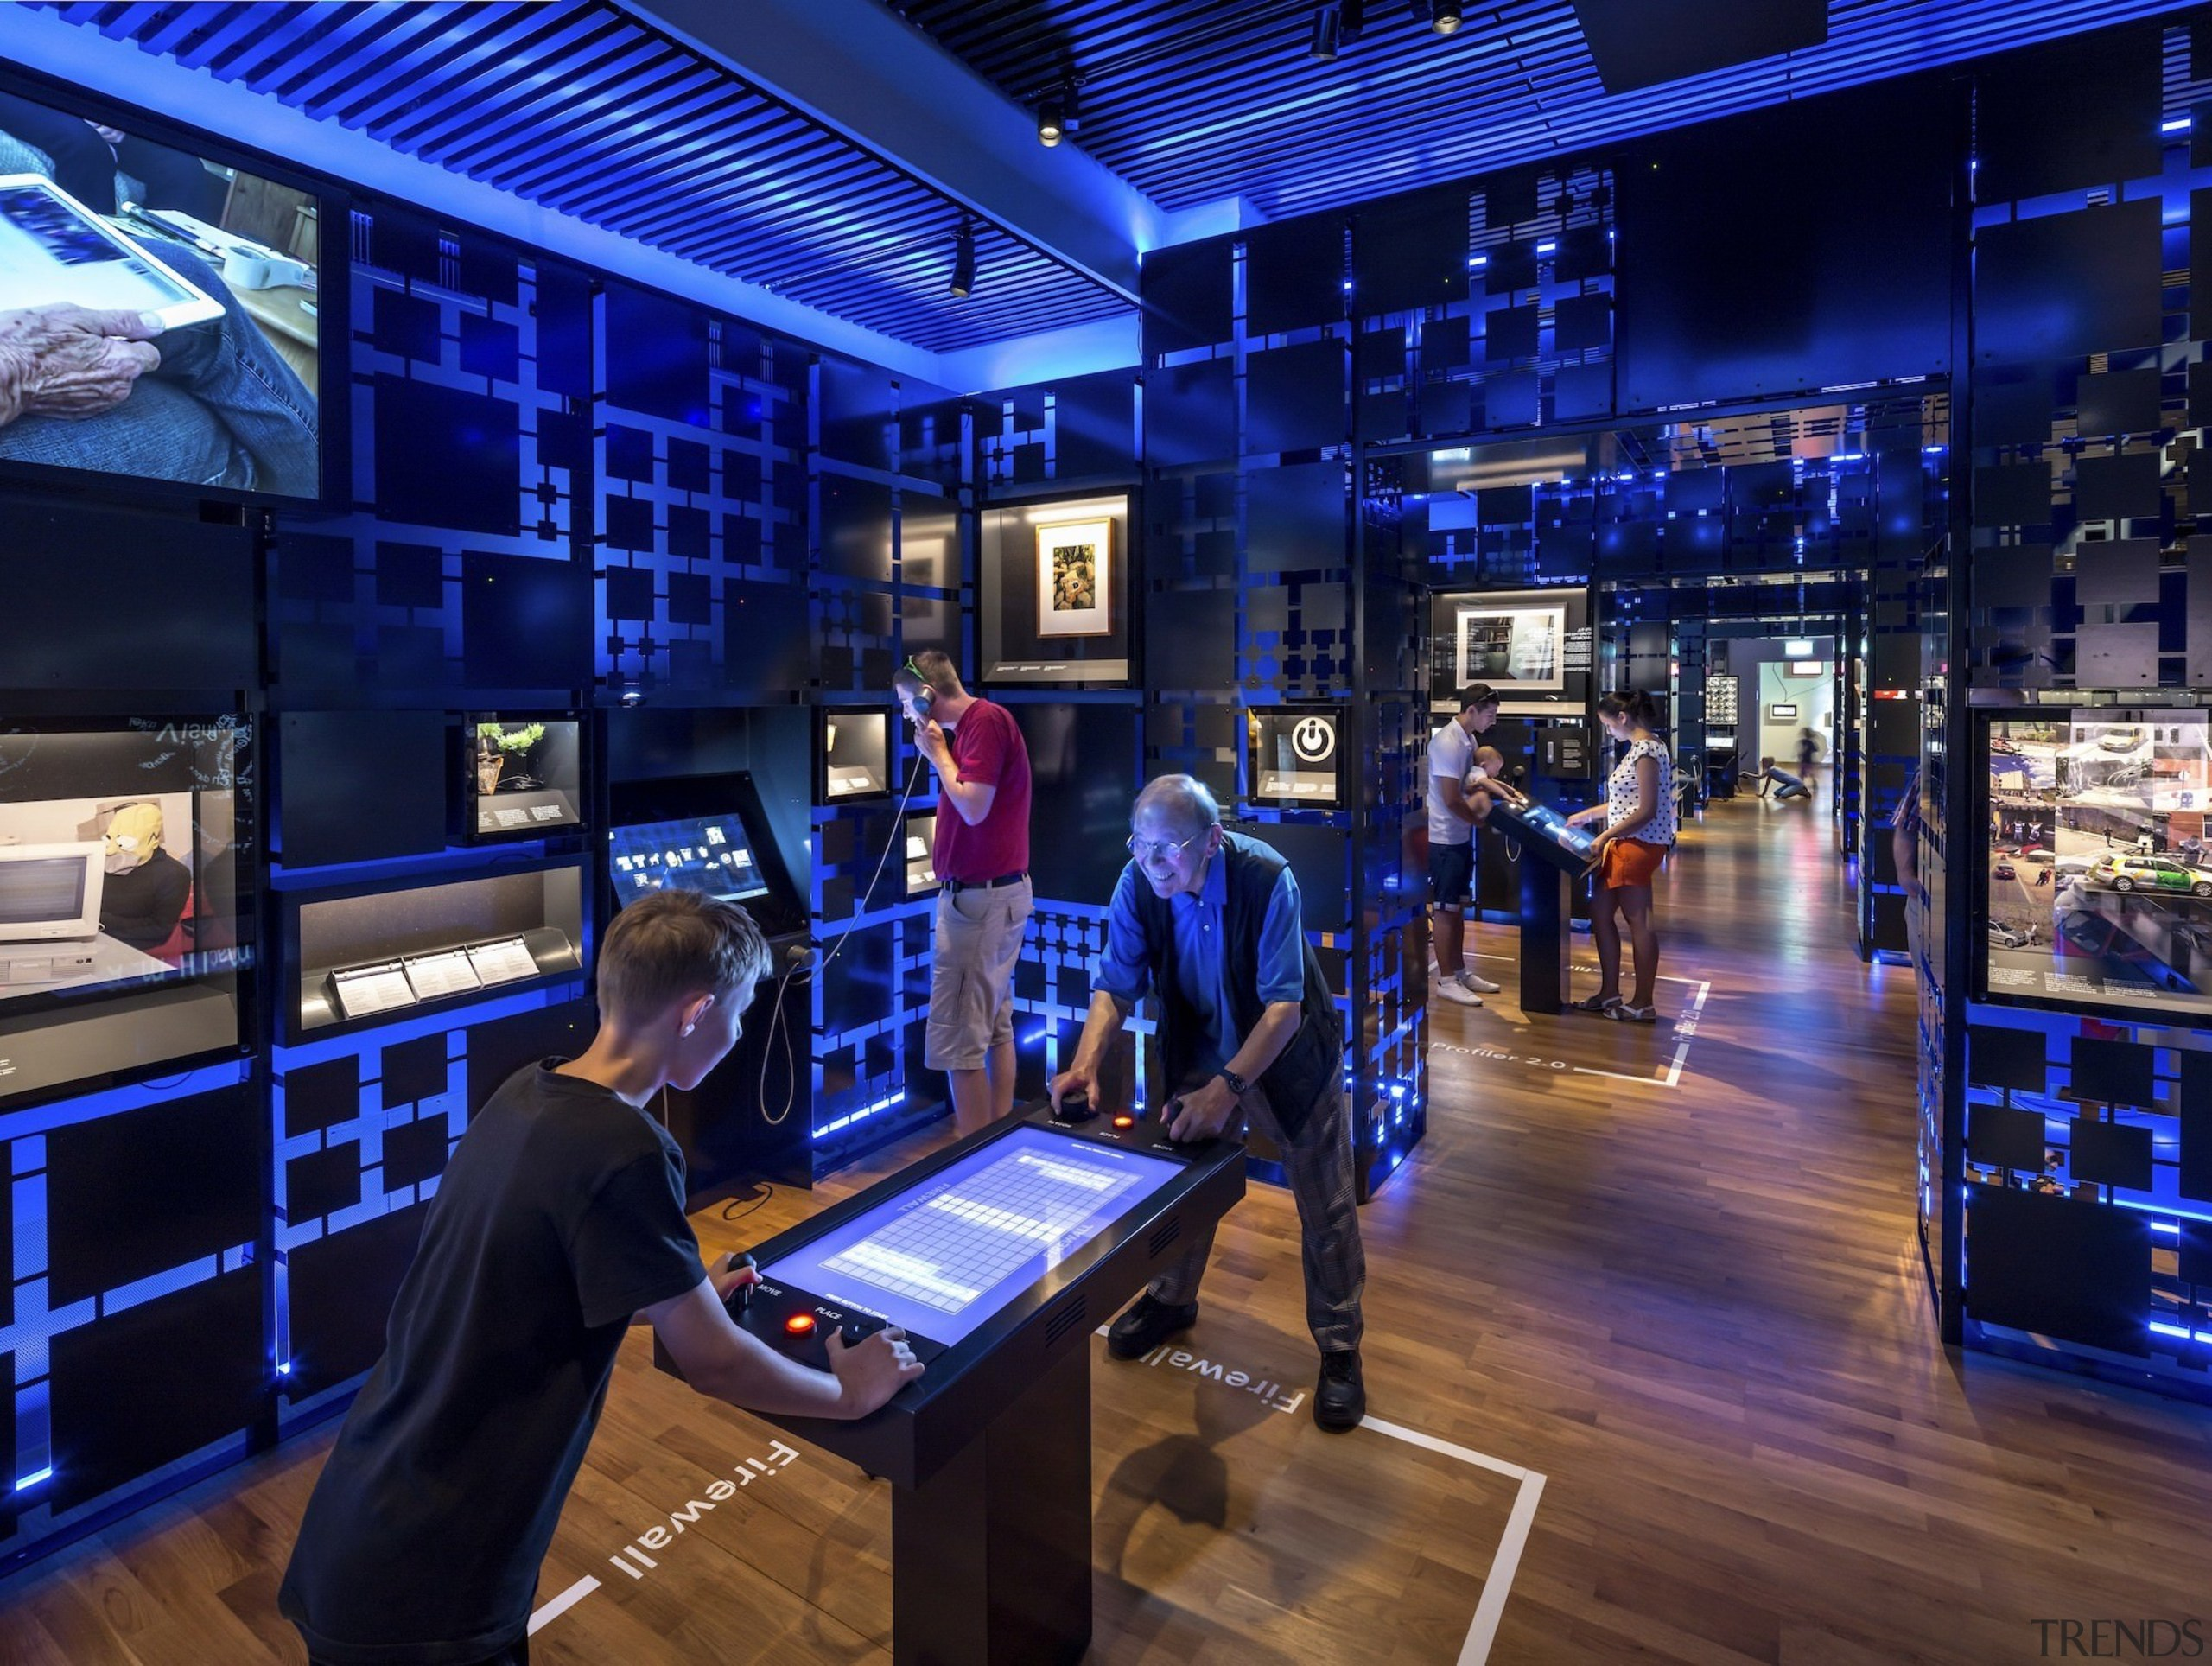 The new permanent exhibition at the Museum of broadcasting, technology, television studio, blue